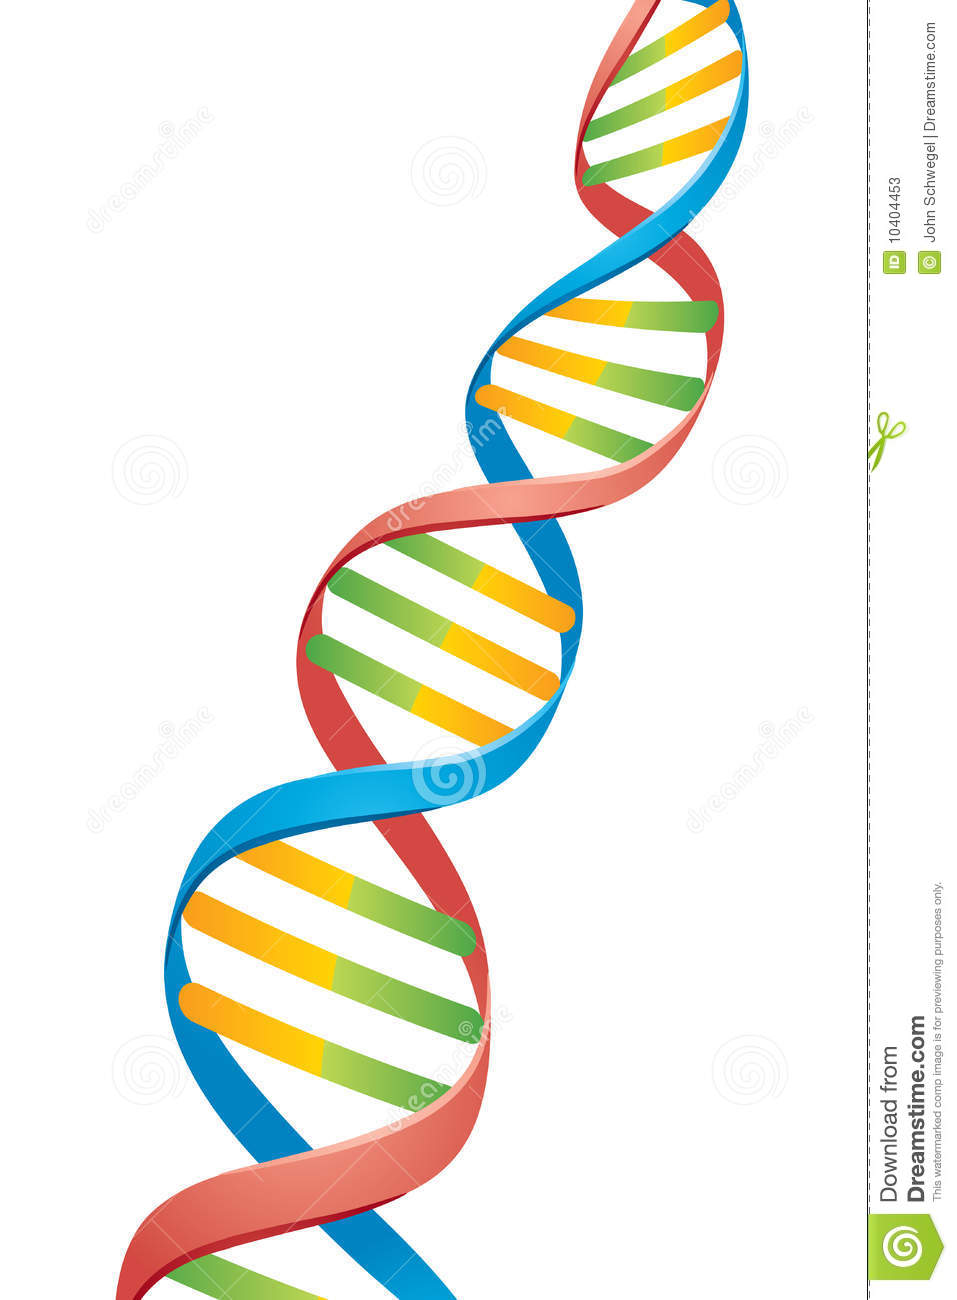 More similar stock images of ` Double Helix DNA Strand `